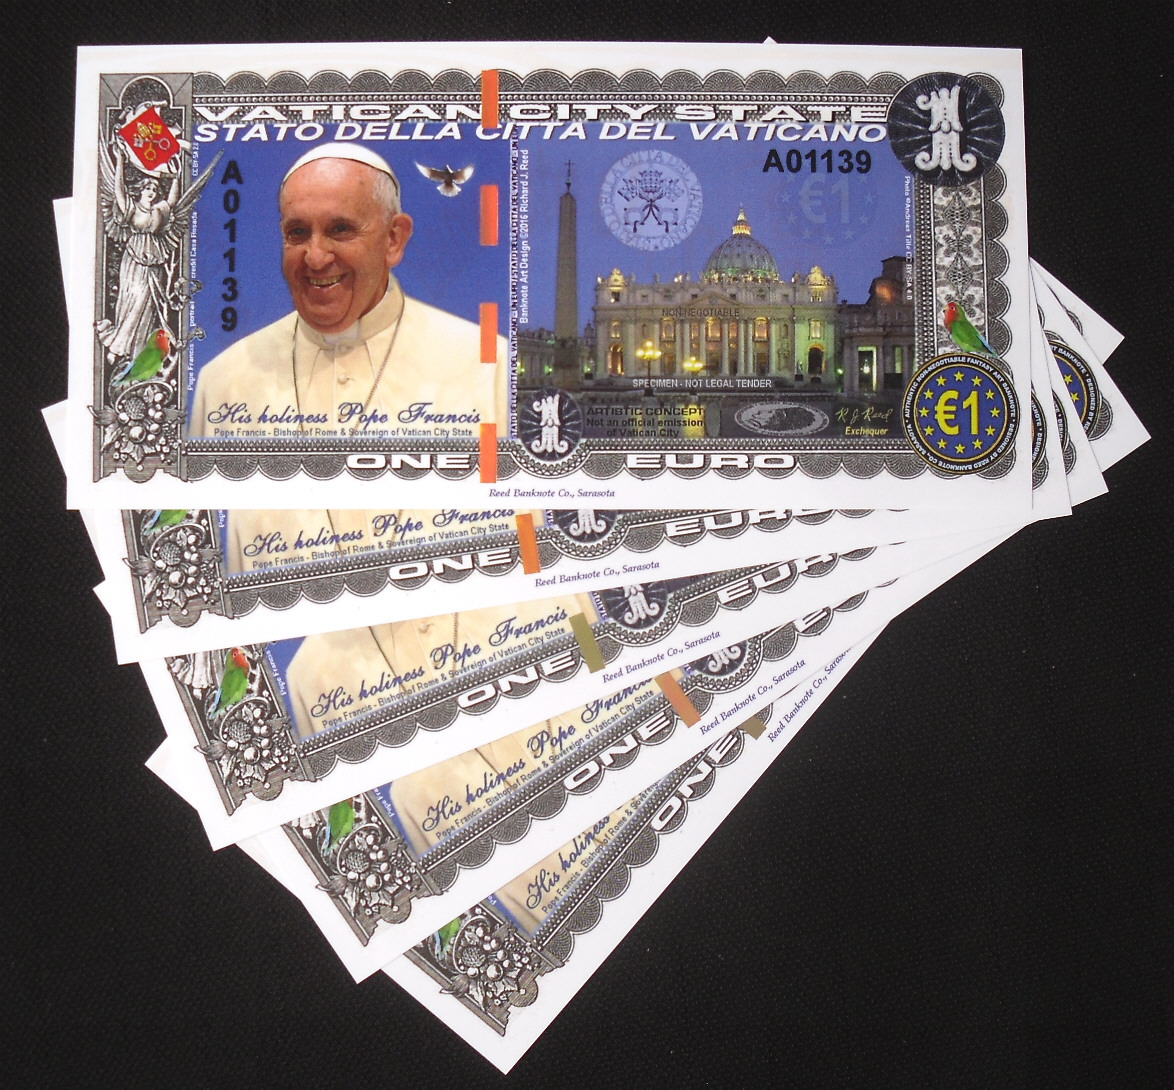 NEW SPECIMEN 1 EURO 2016 POPE FRANCIS VATICAN CITY POLYMER FANTASY ART BANKNOTE!